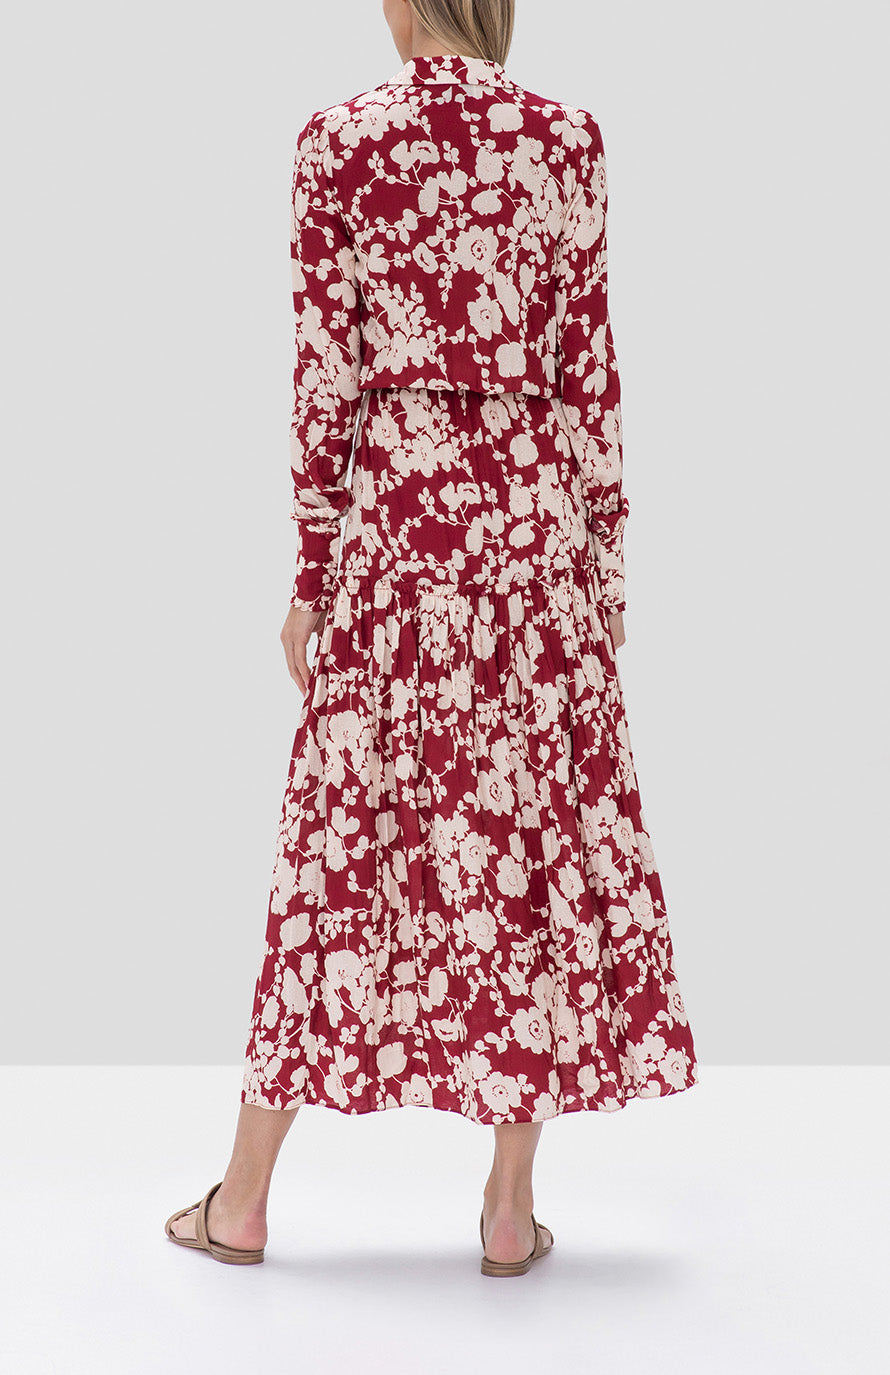 Alexis Ambrosia Dress in Maroon Poppy from the Fall Winter 2019 Ready To Wear Collection - Rear View